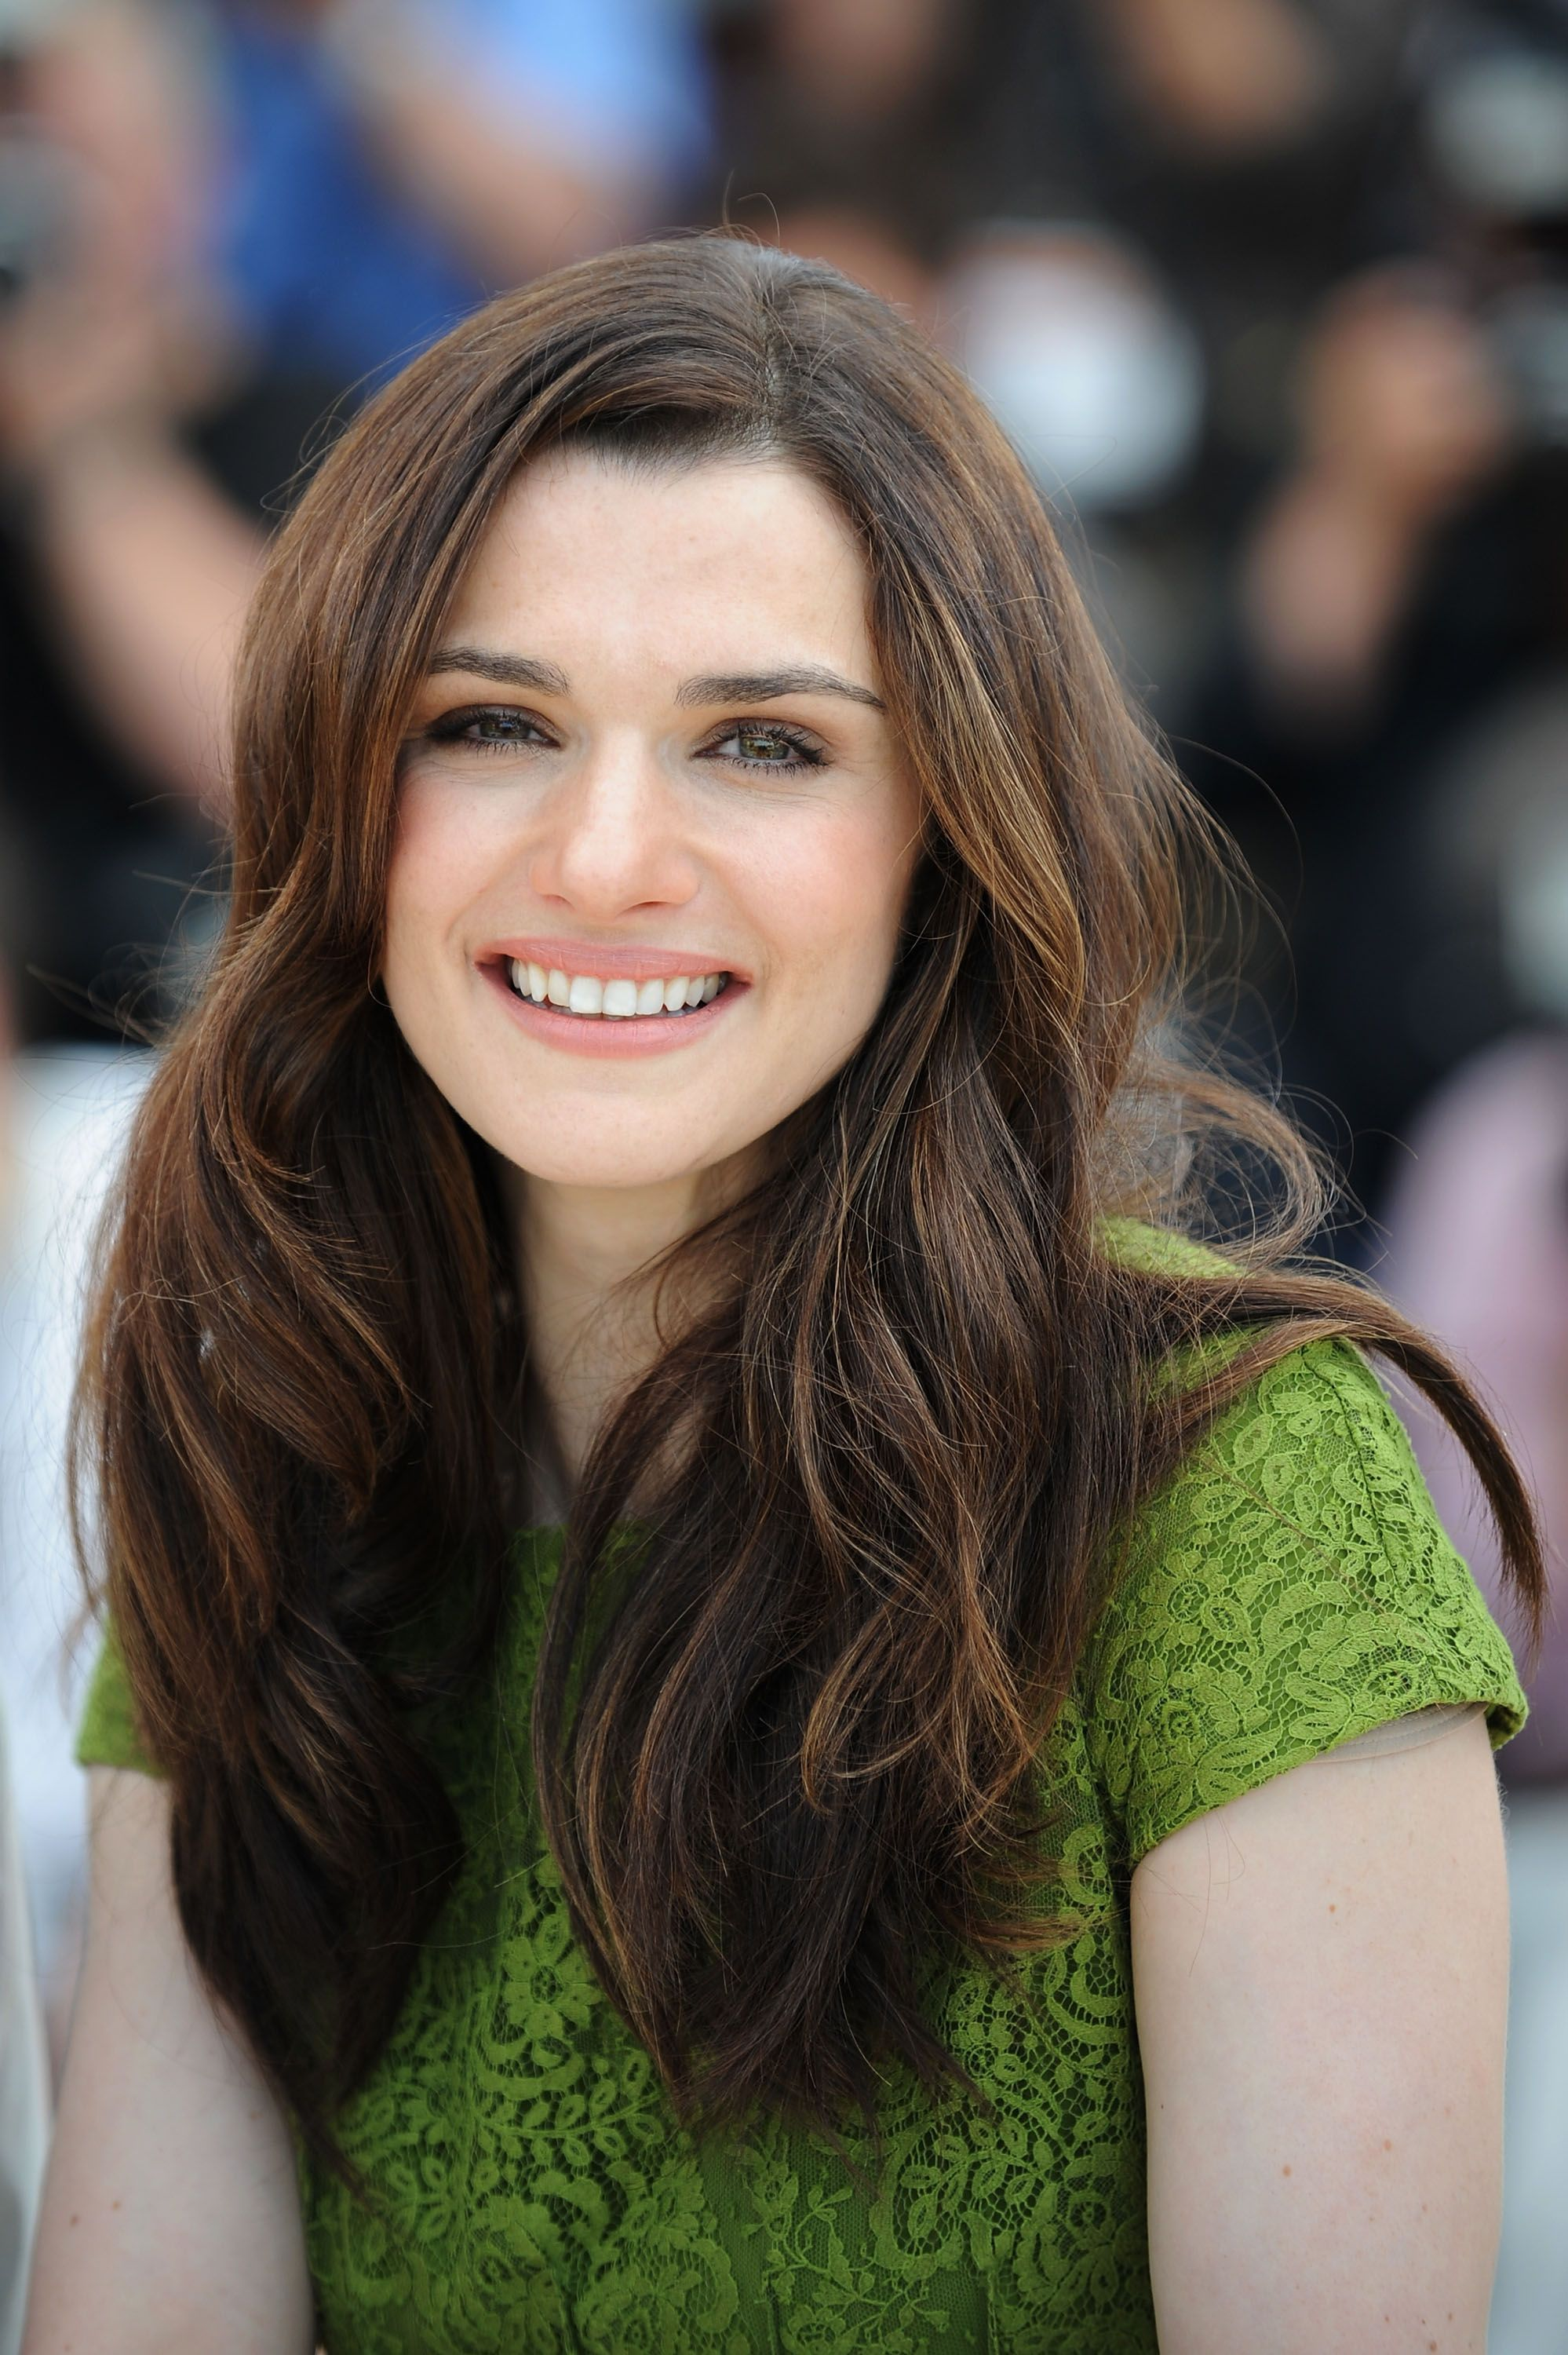 Discussion on this topic: Ilaria Occhini, rachel-weisz-born-1970-naturalized-american-citizen/